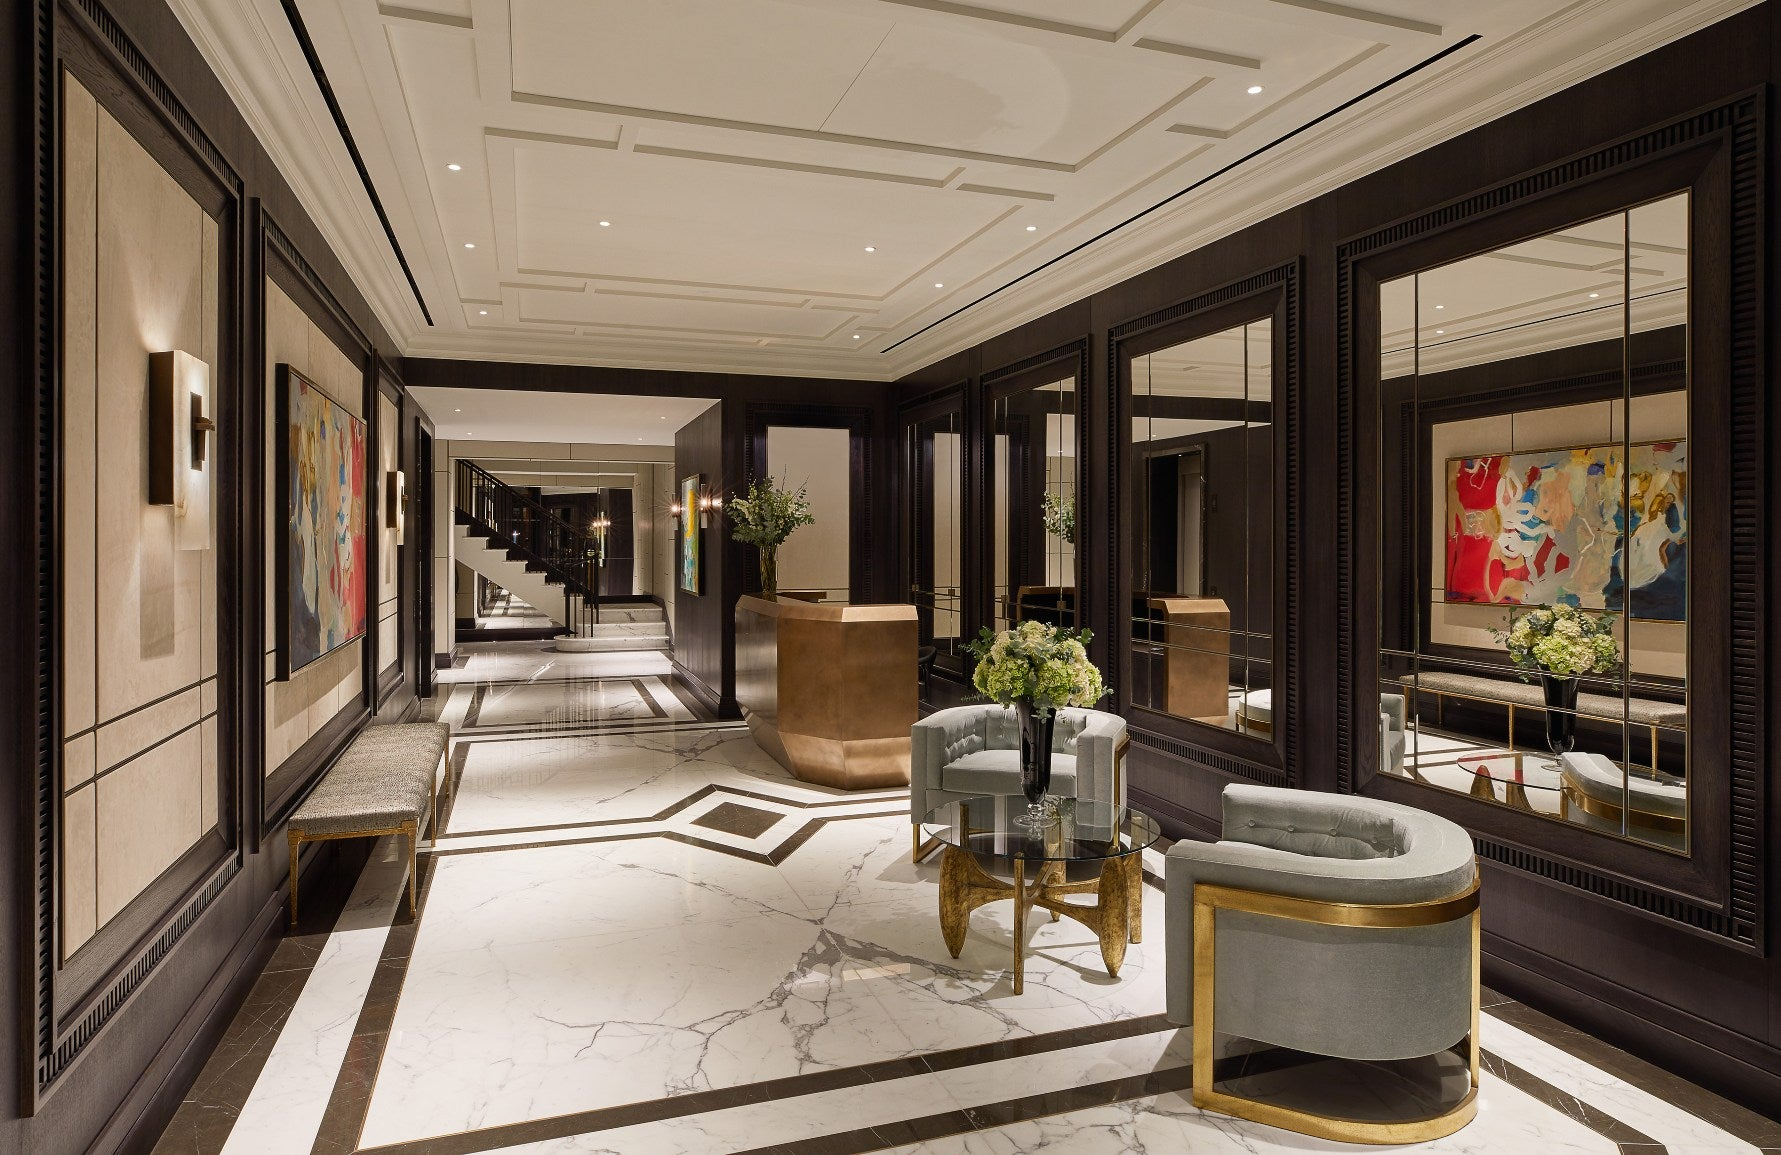 The Best of Luxury Interiors & Interior Designers in London – Finchatton Kingwood development –LuxDeco.com Style Guide